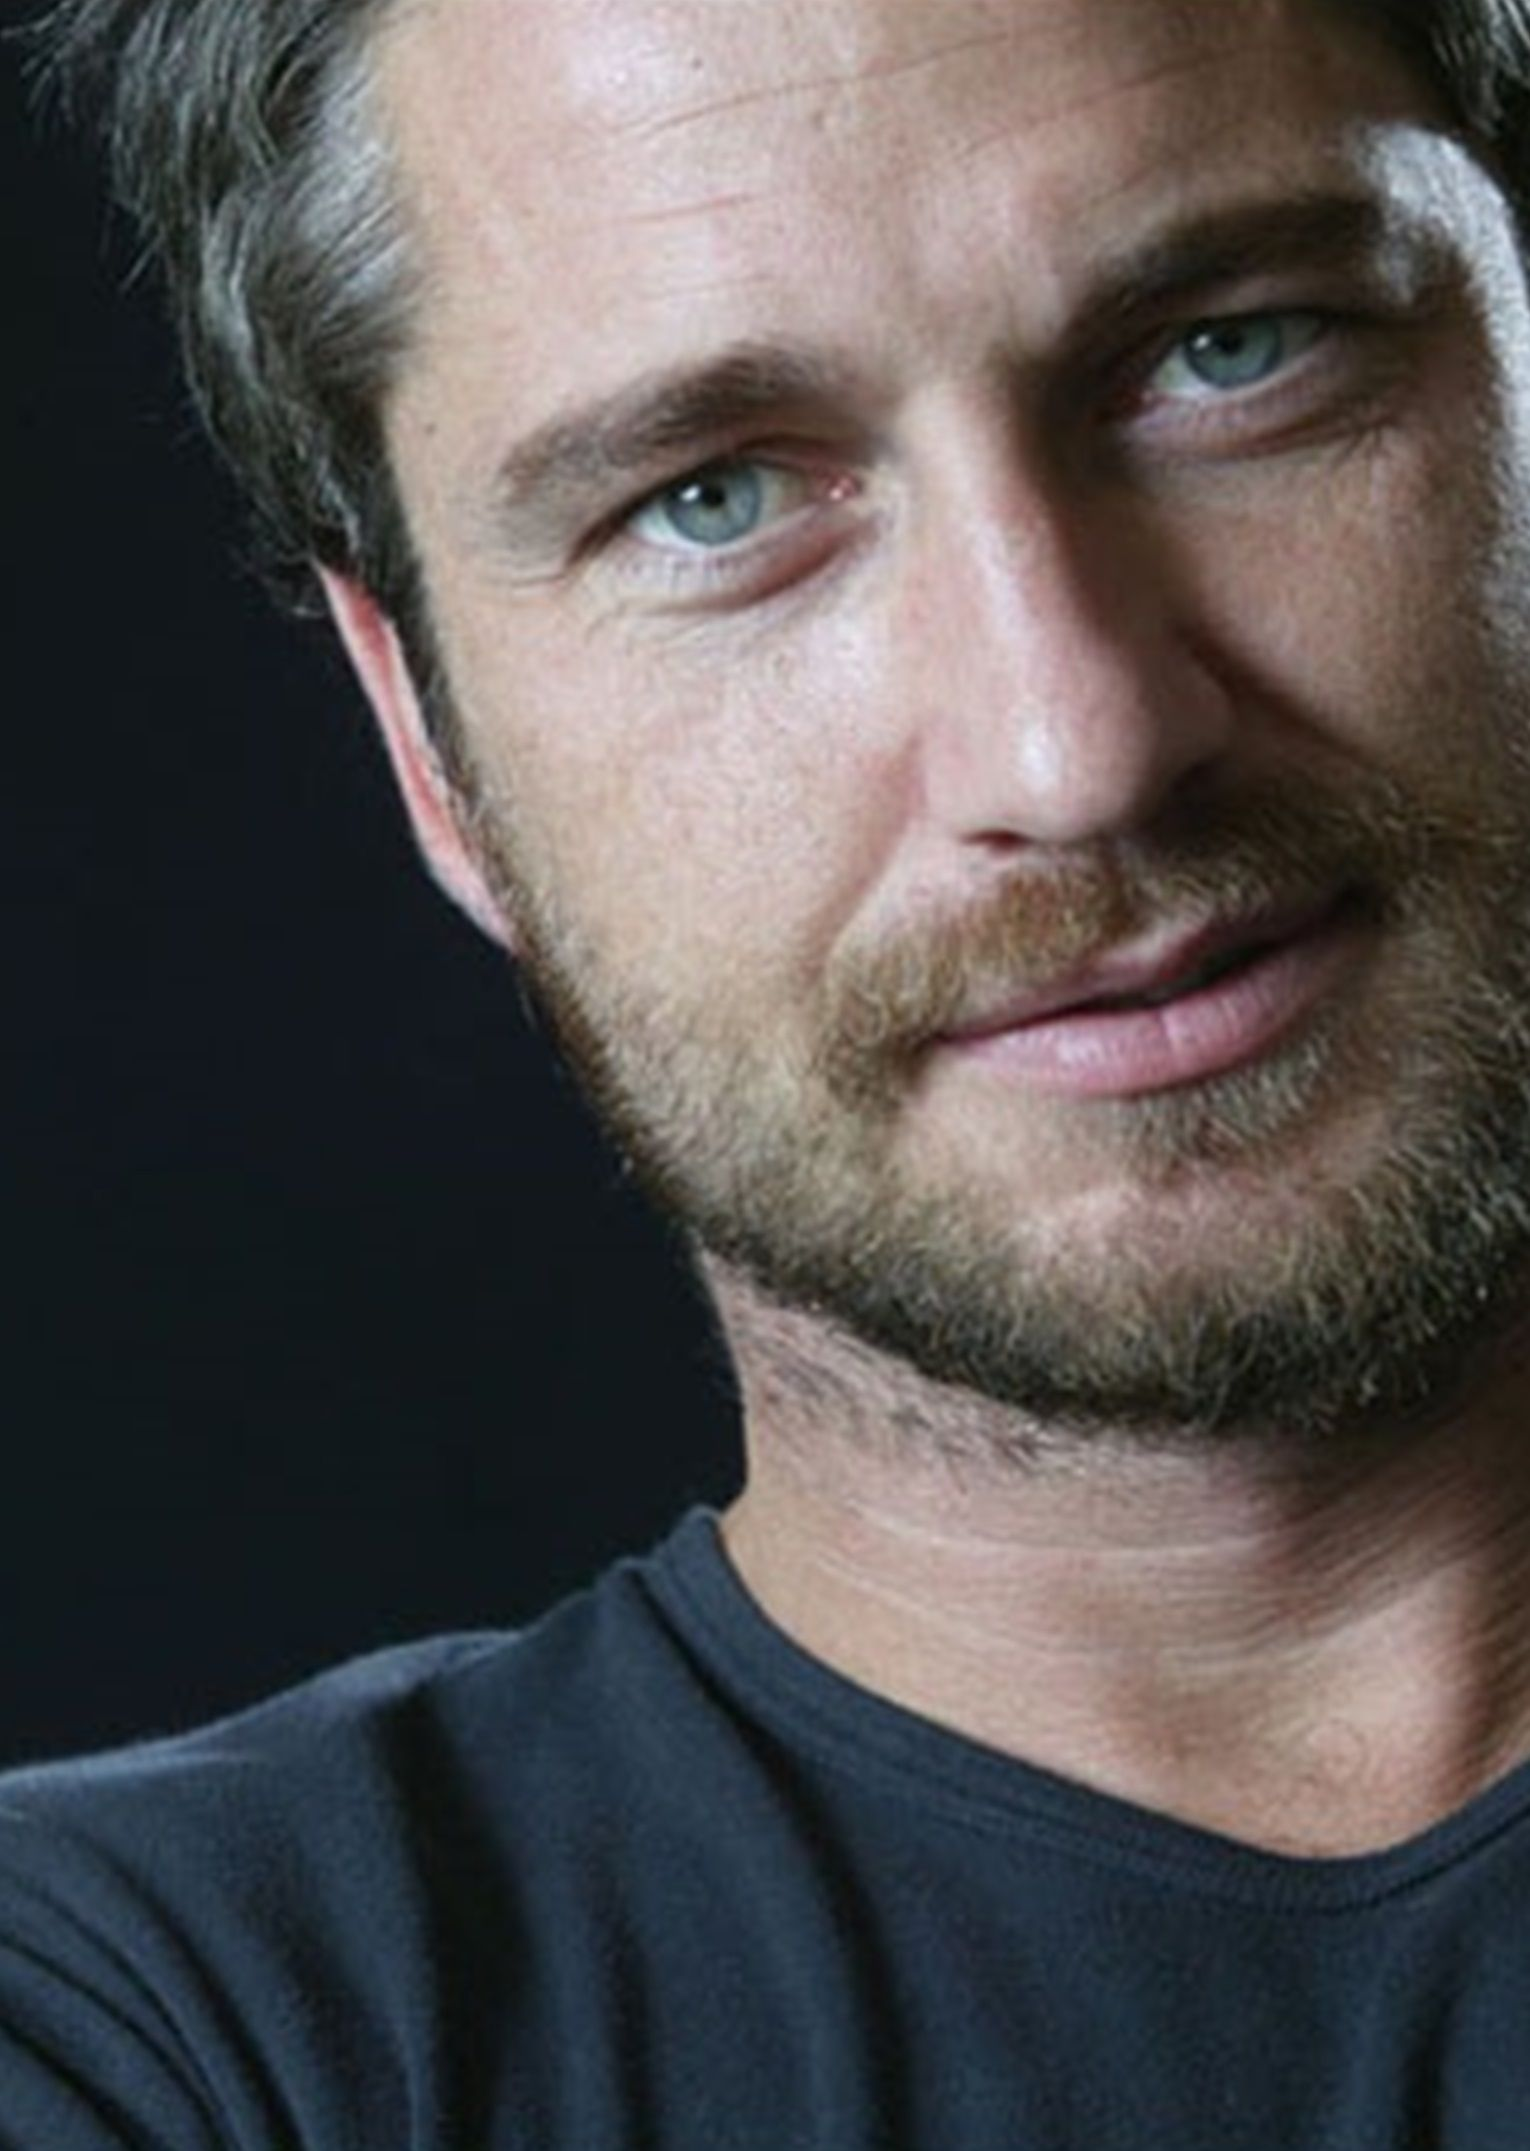 Gerard Butler omg I just fainted. What a face | general | Pinterest ...